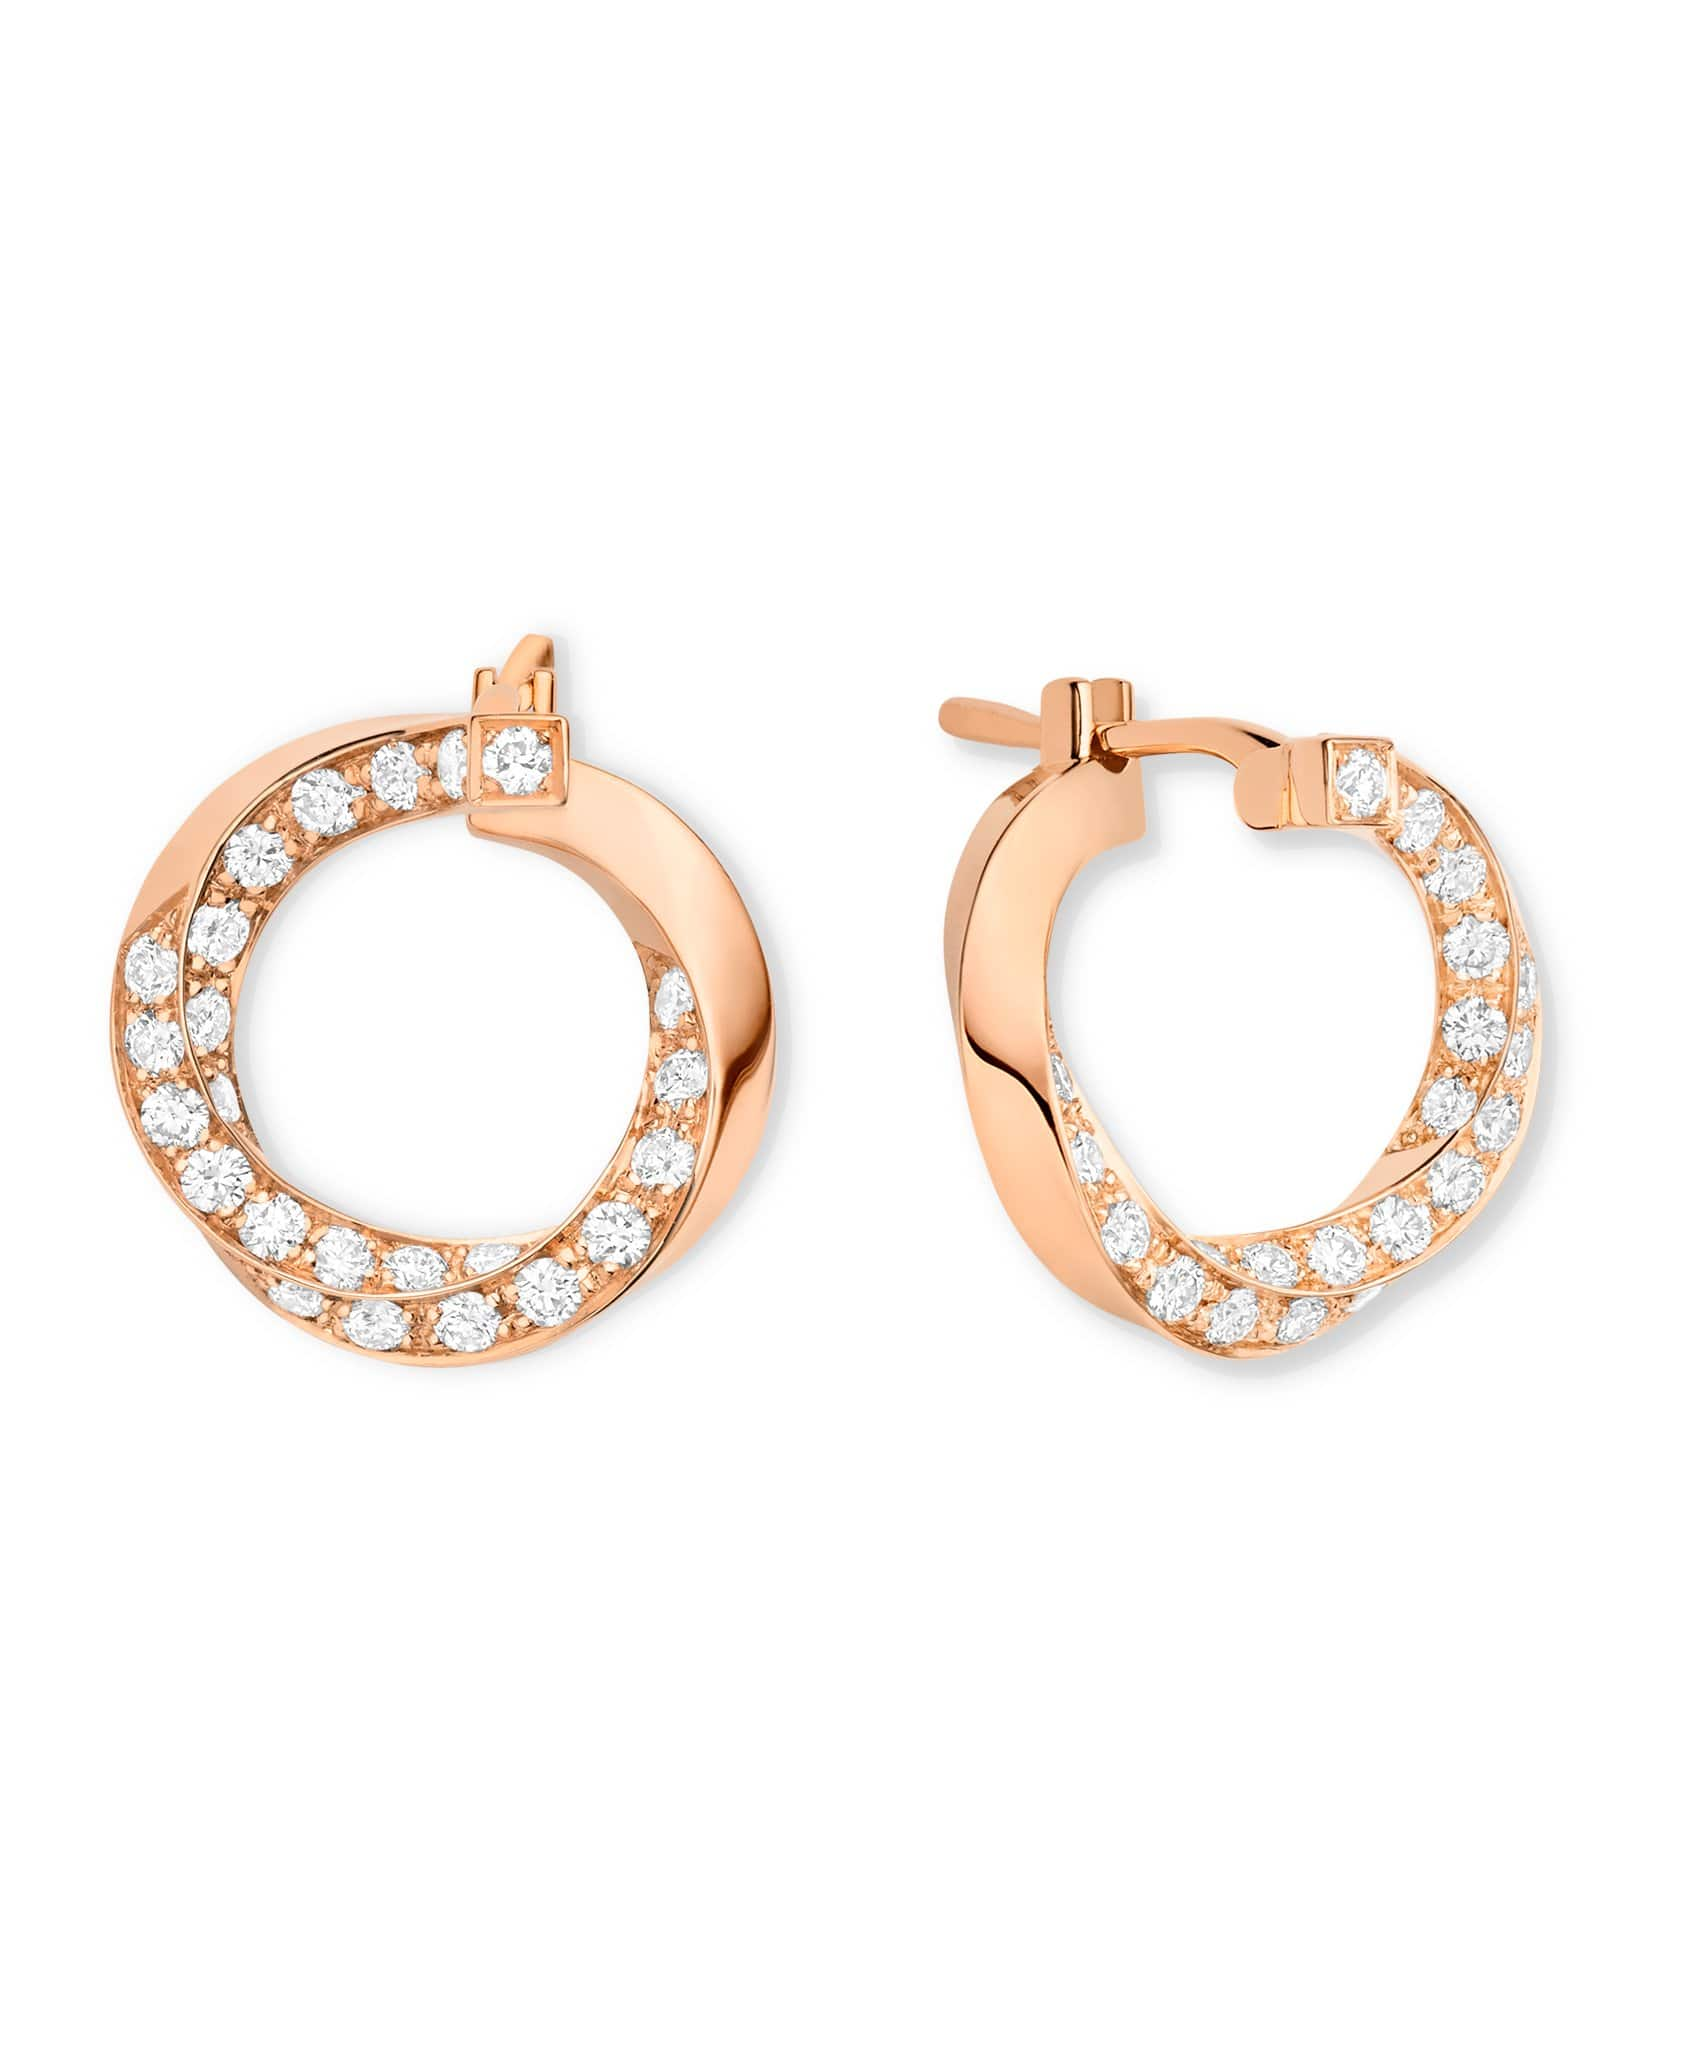 Diamond Thread Earrings: Discover Luxury Fine Jewelry | Nouvel Heritage